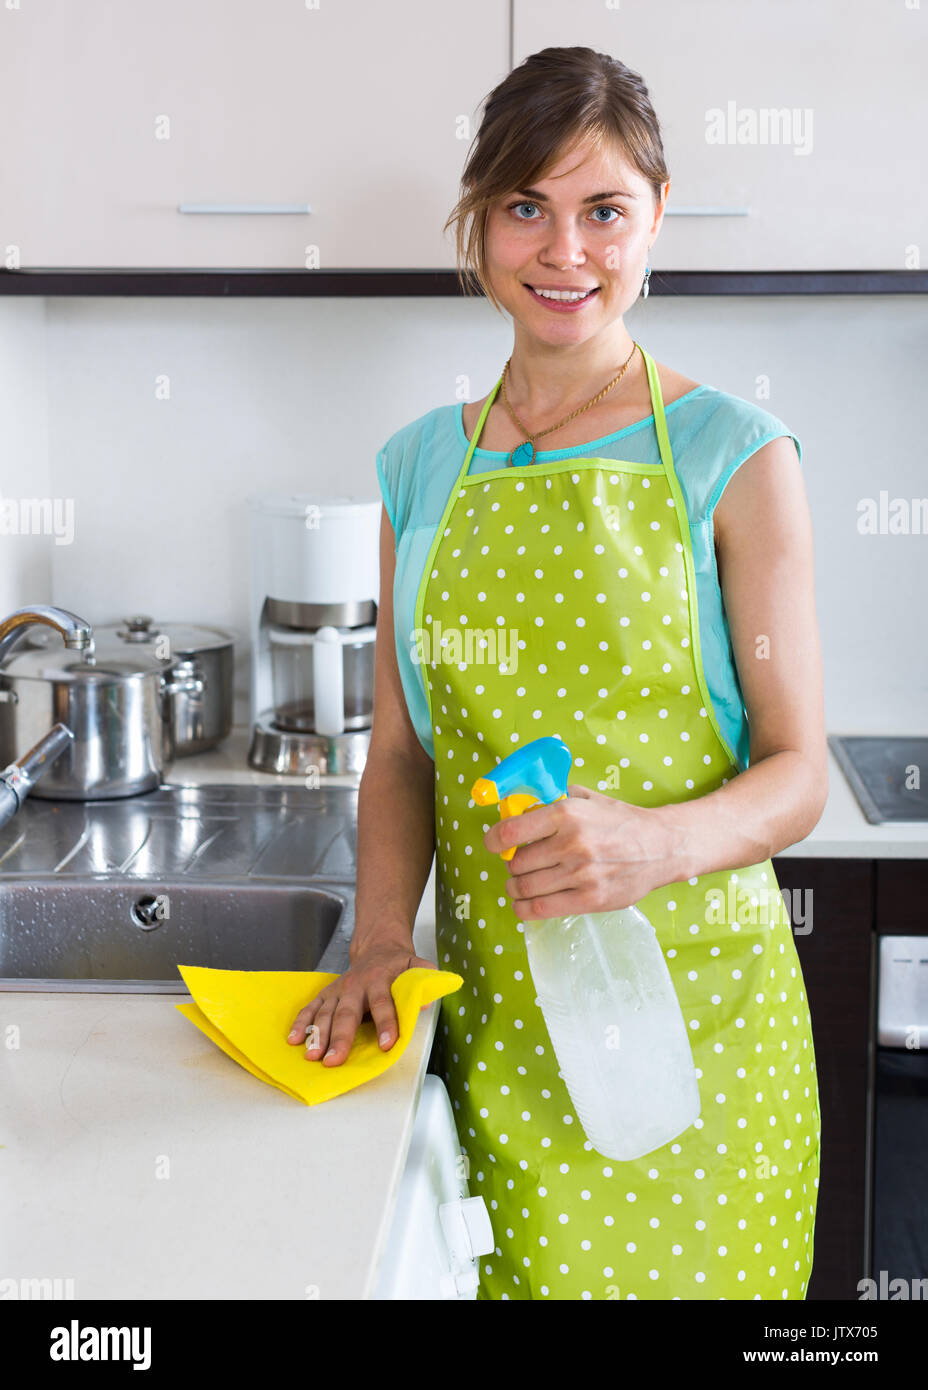 Smiling Maid Doing Professional Clean Up In Home Kitchen